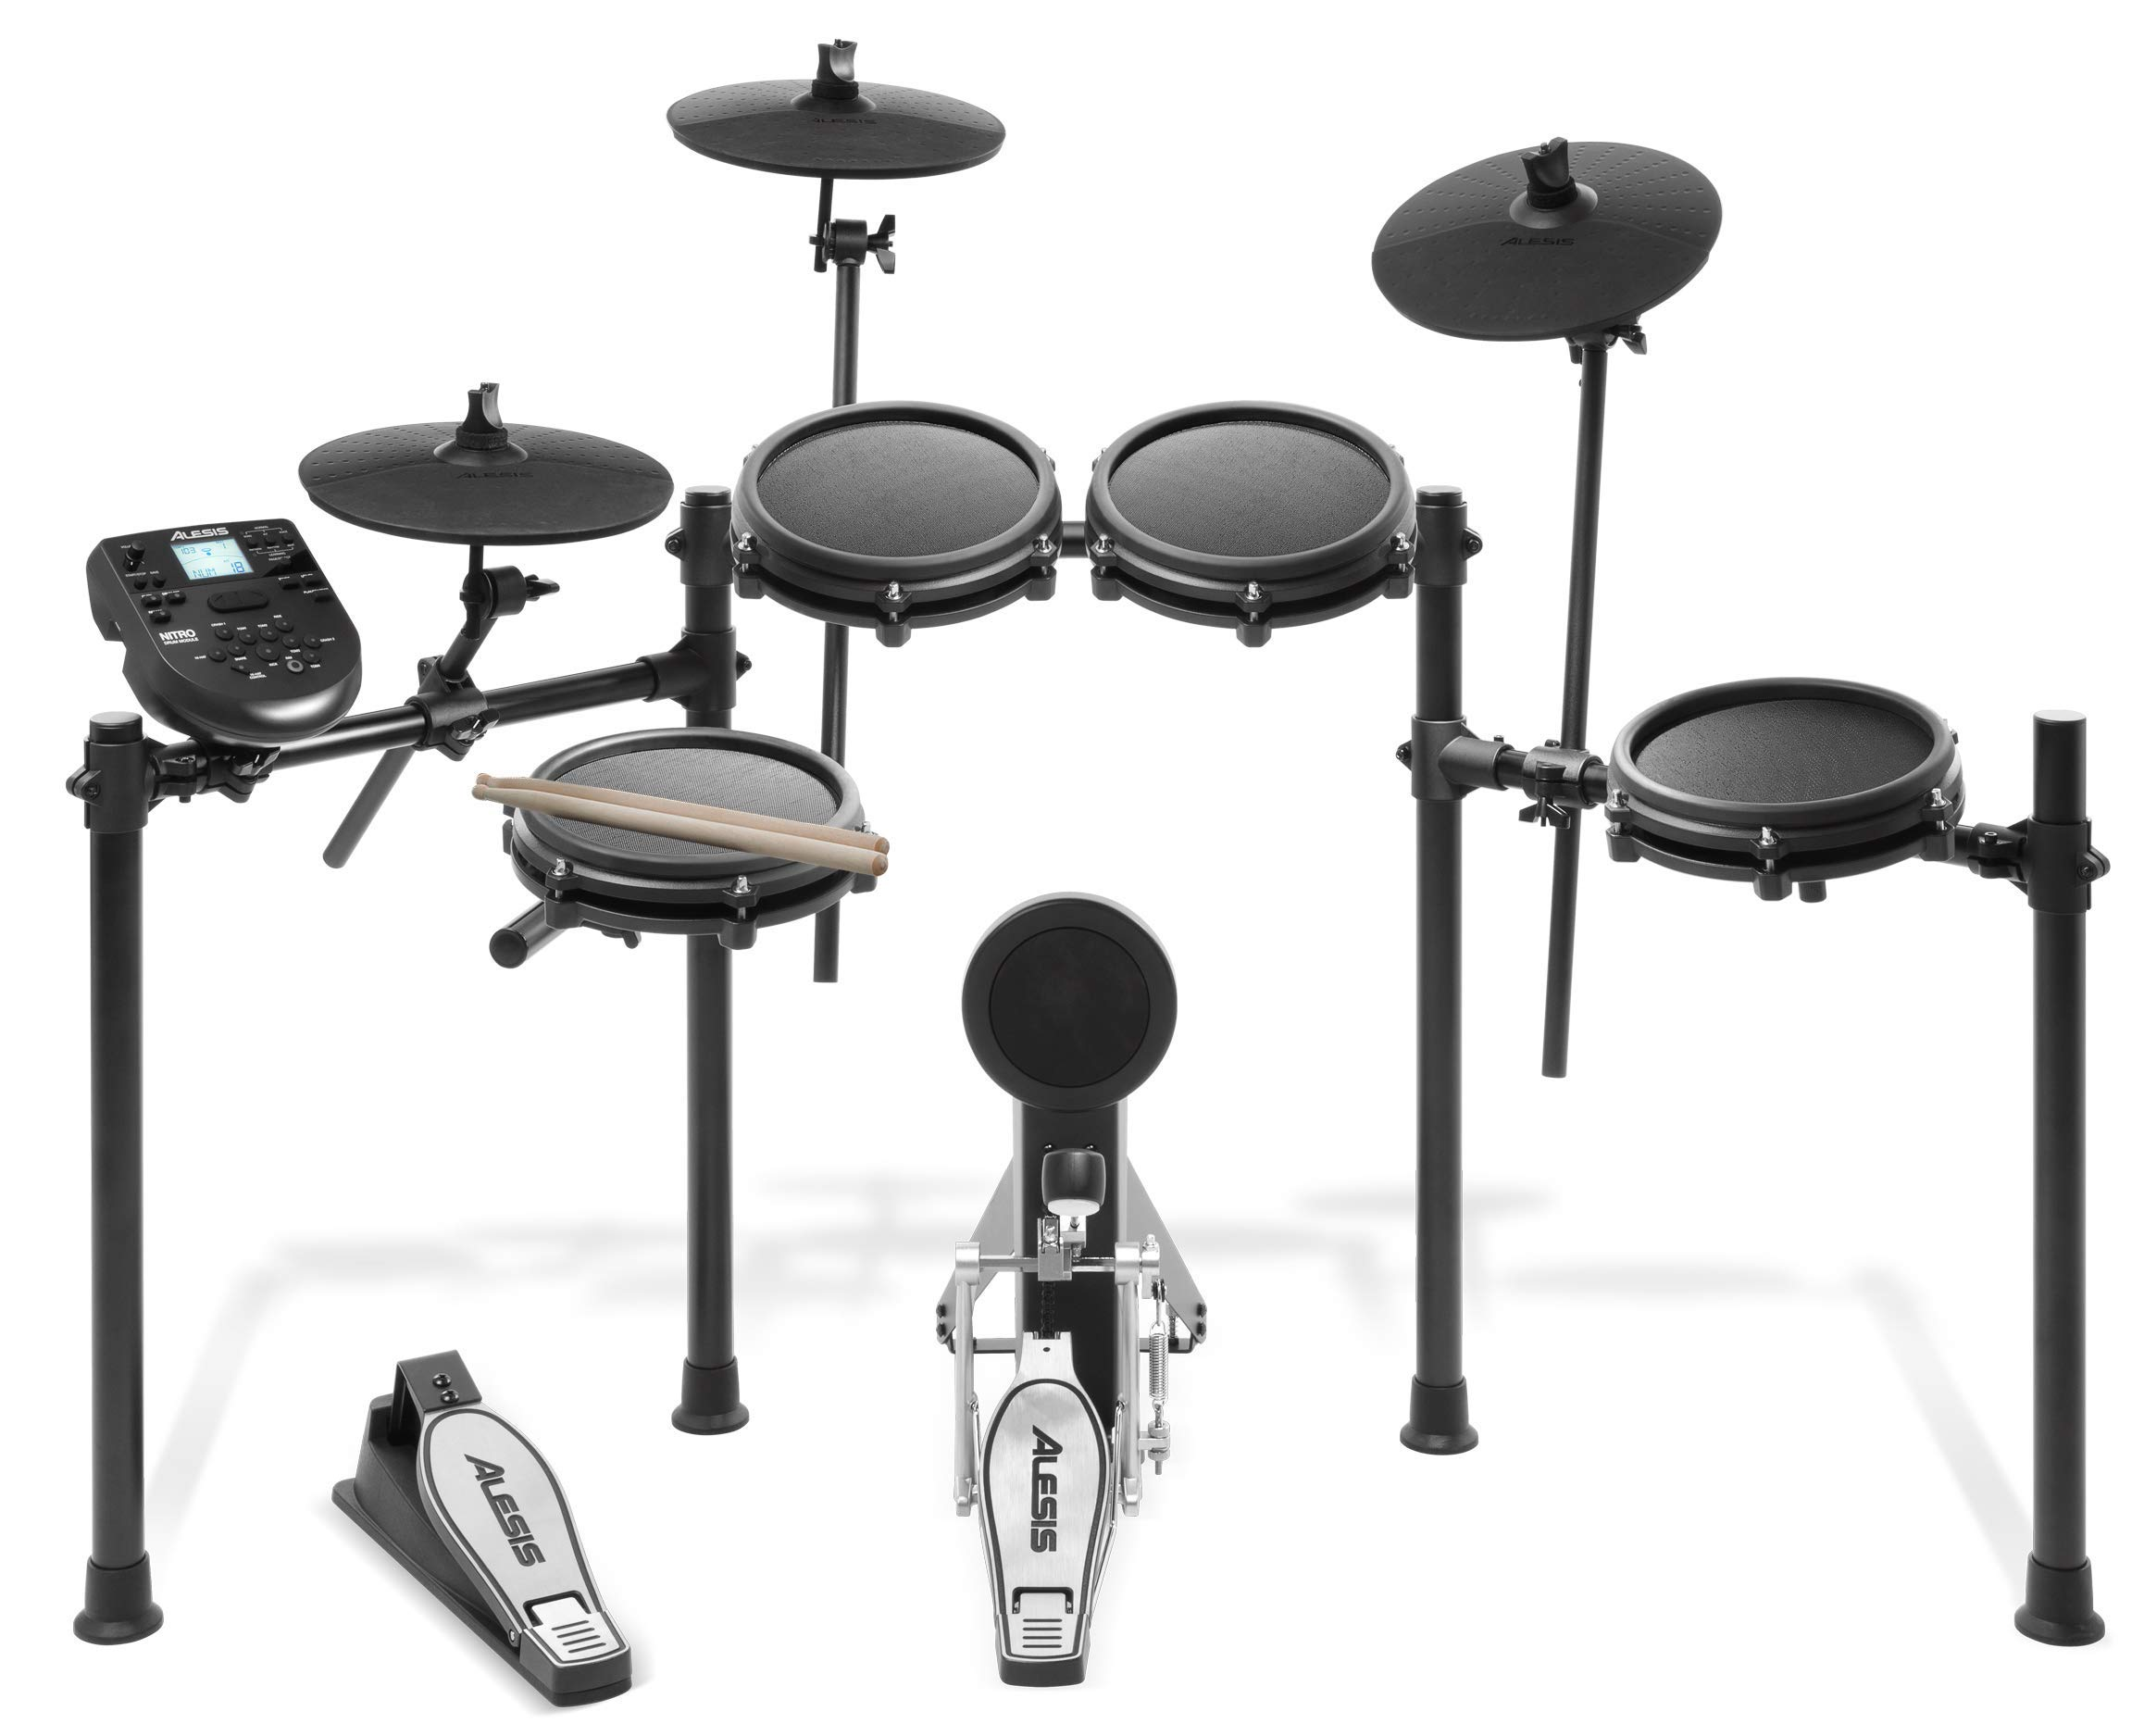 Alesis Drums Nitro Mesh Kit   Eight Piece All-Mesh Electronic Drum Kit With Super-Solid Aluminum Rack, 385 Sounds, 60 Play-Along Tracks, Connection Cables, Drum Sticks & Drum Key included (Renewed)